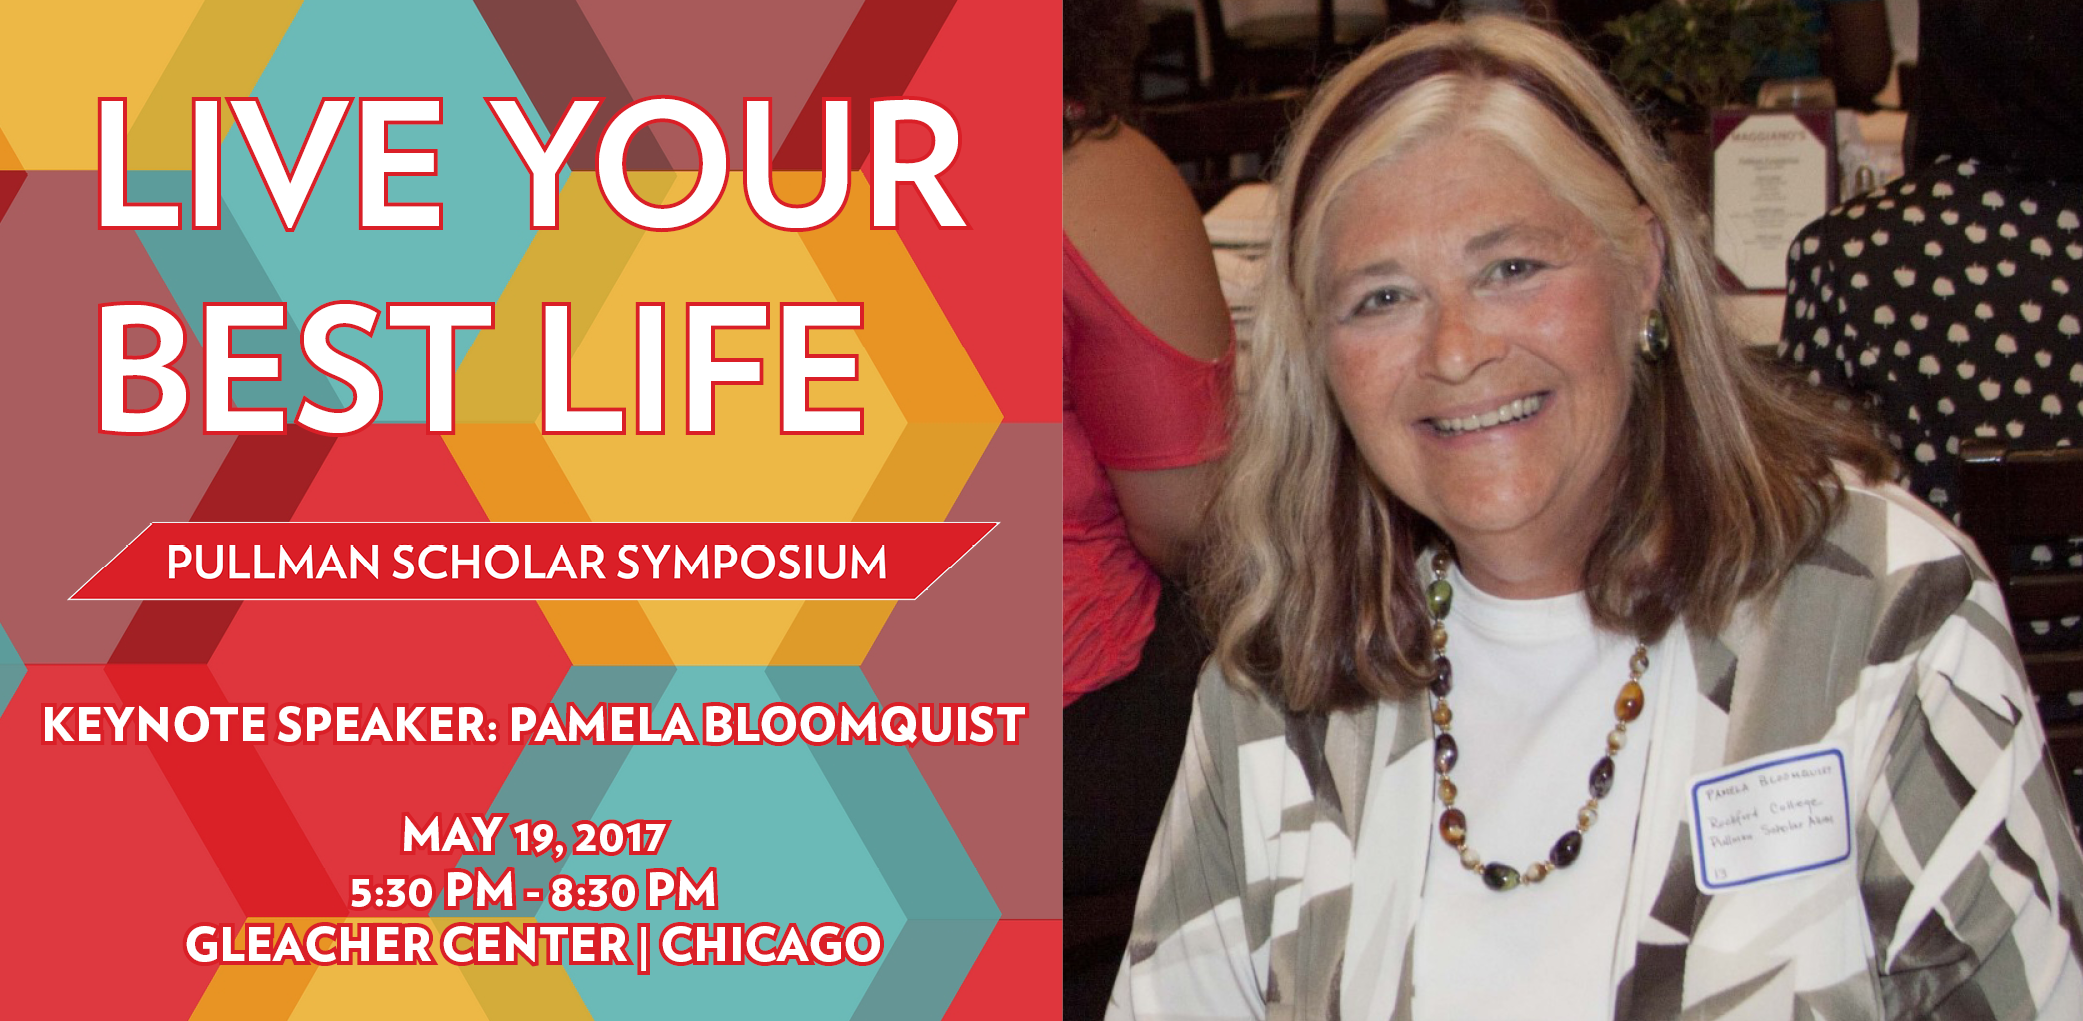 The 2017 Pullman Scholar Symposium Keynote Speaker is Pamela Bloomquist